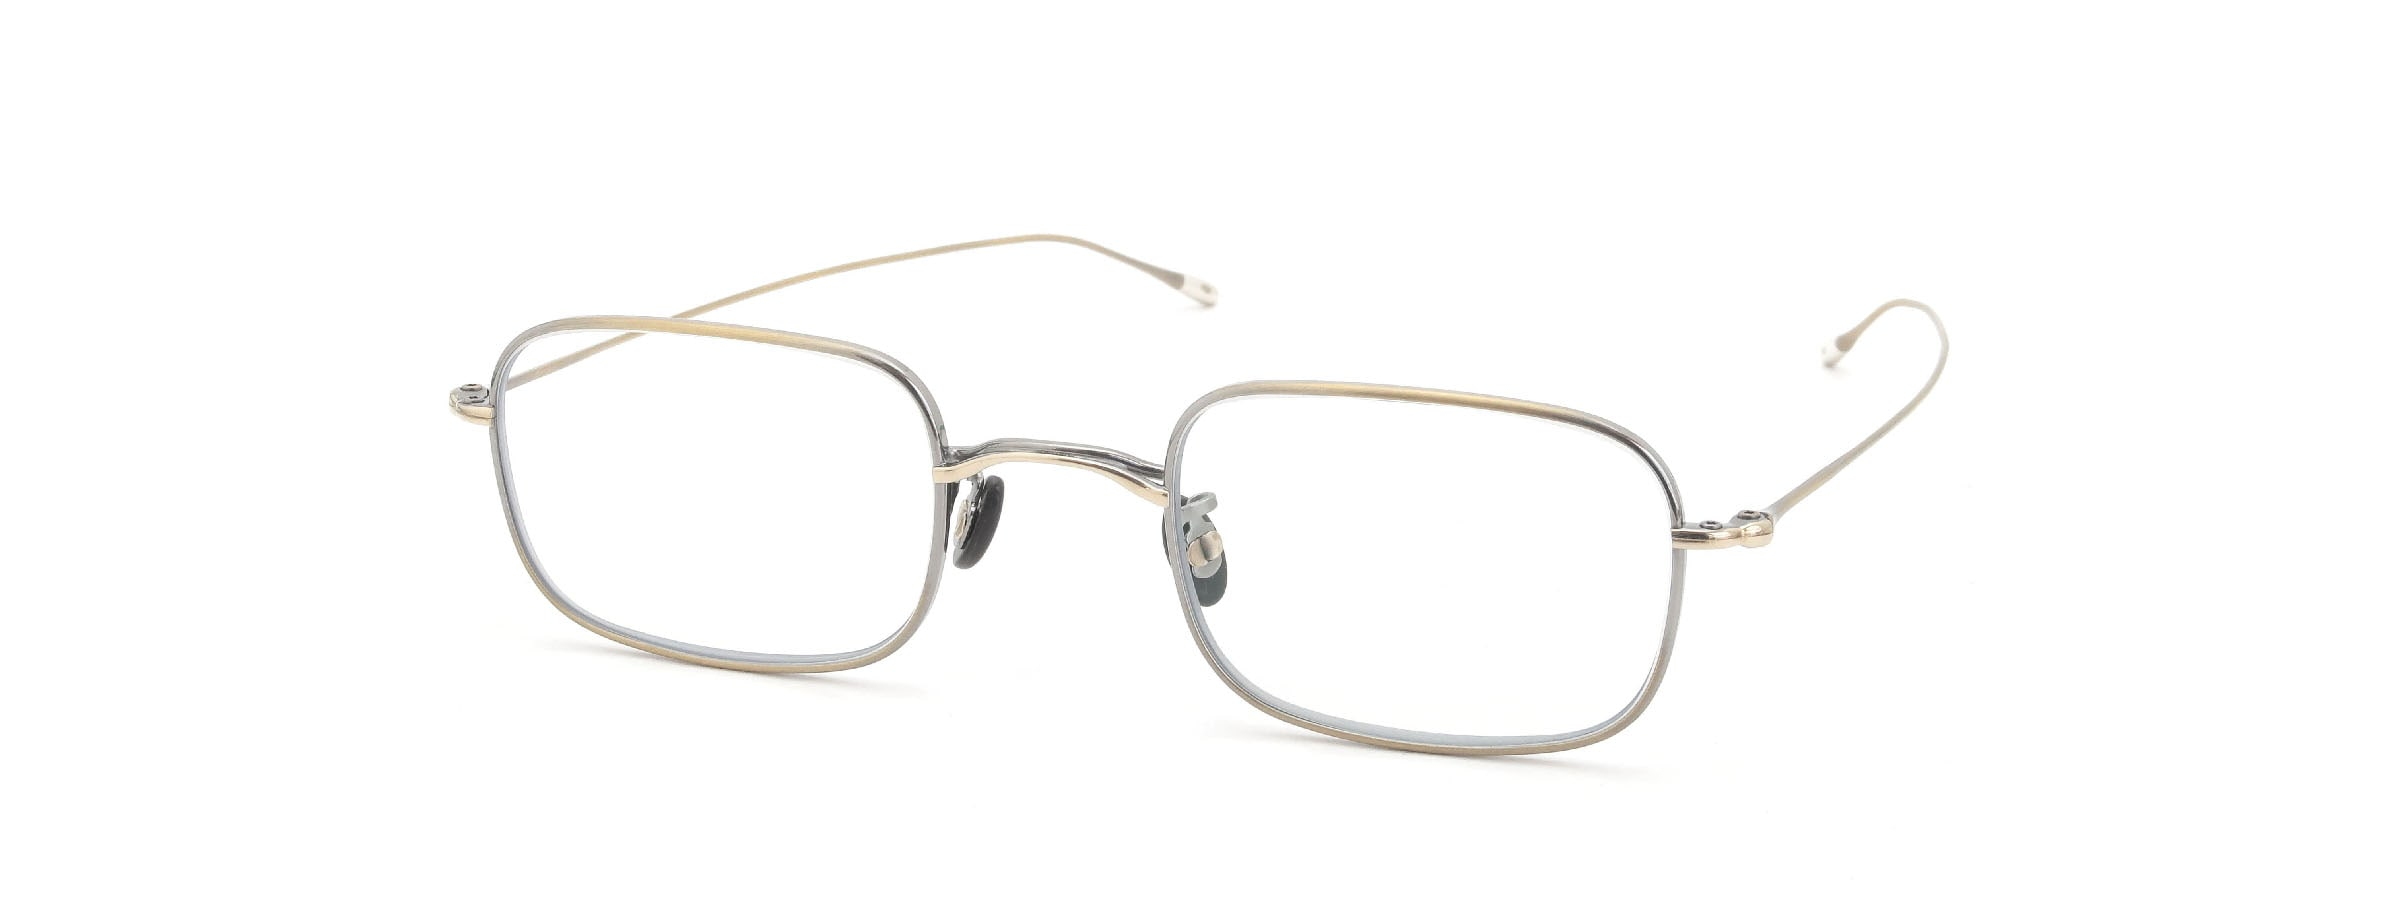 10 eyevan NO.8 47size 4S-CL Antique Gold全体像